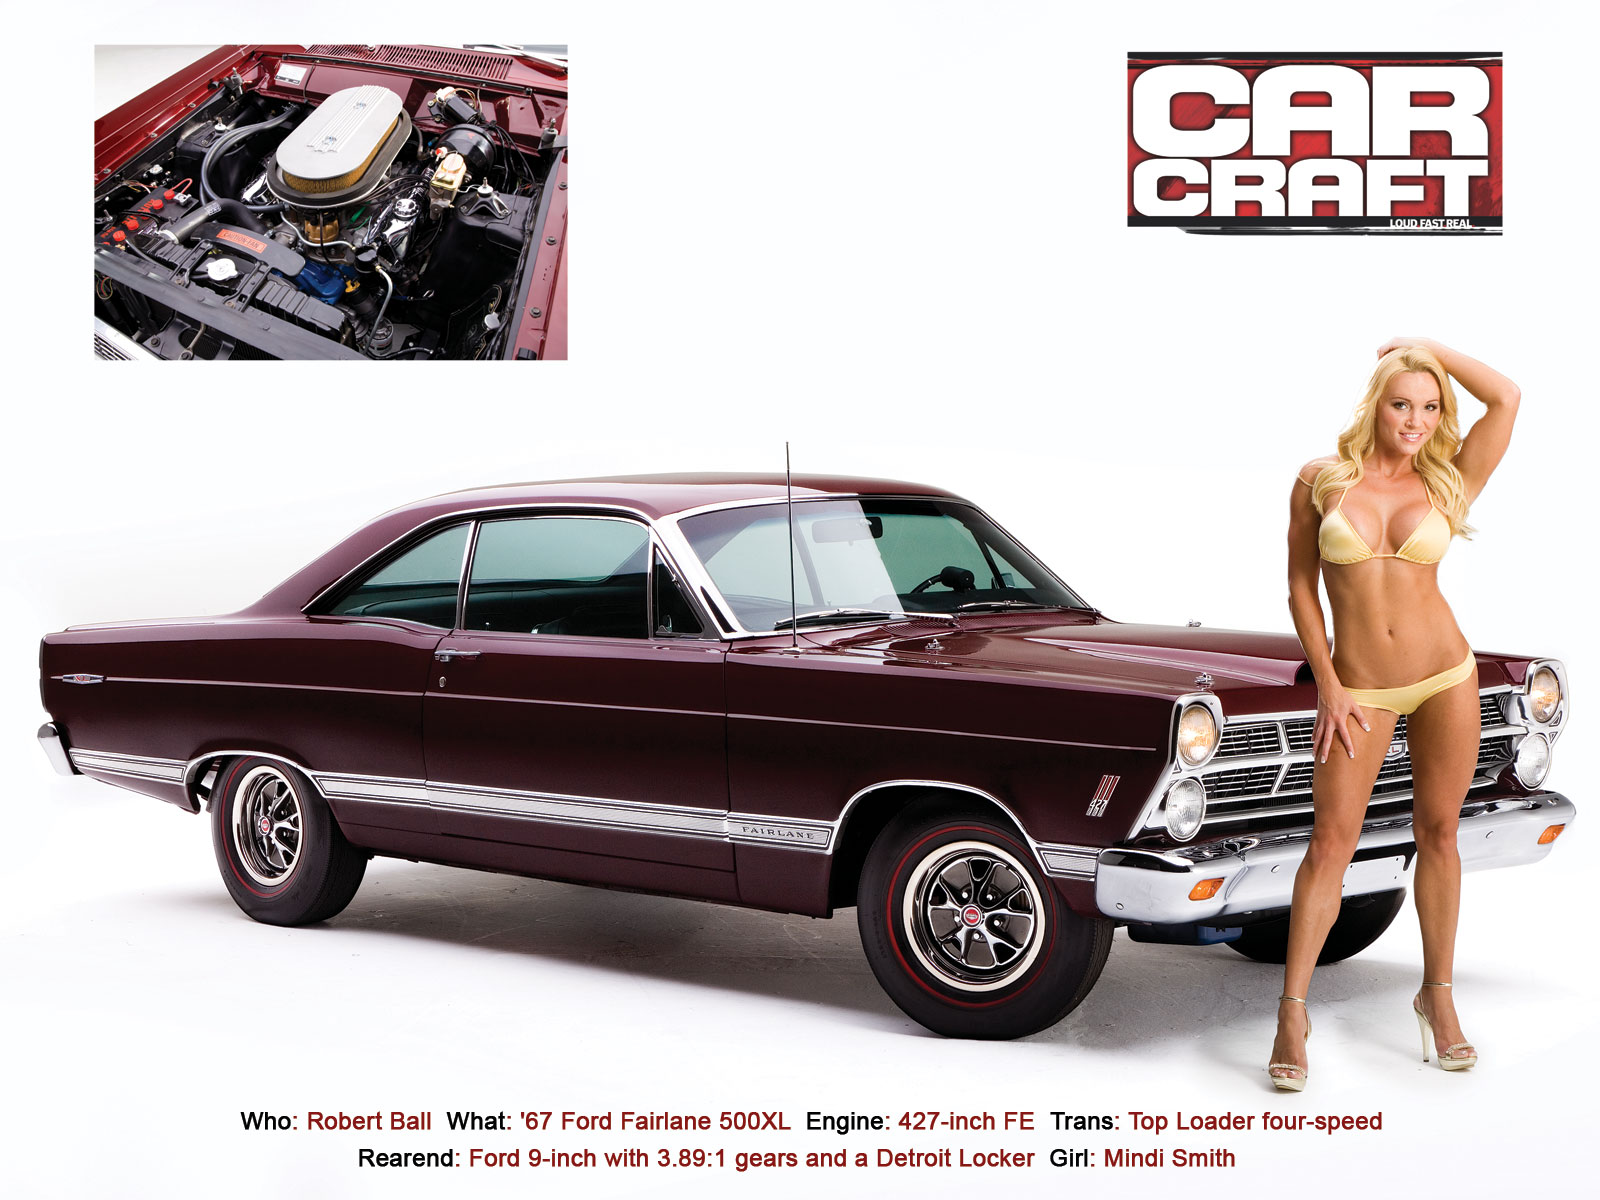 Girls And Muscle Cars Wallpaper: The Return Of Our Annual Swimsuit